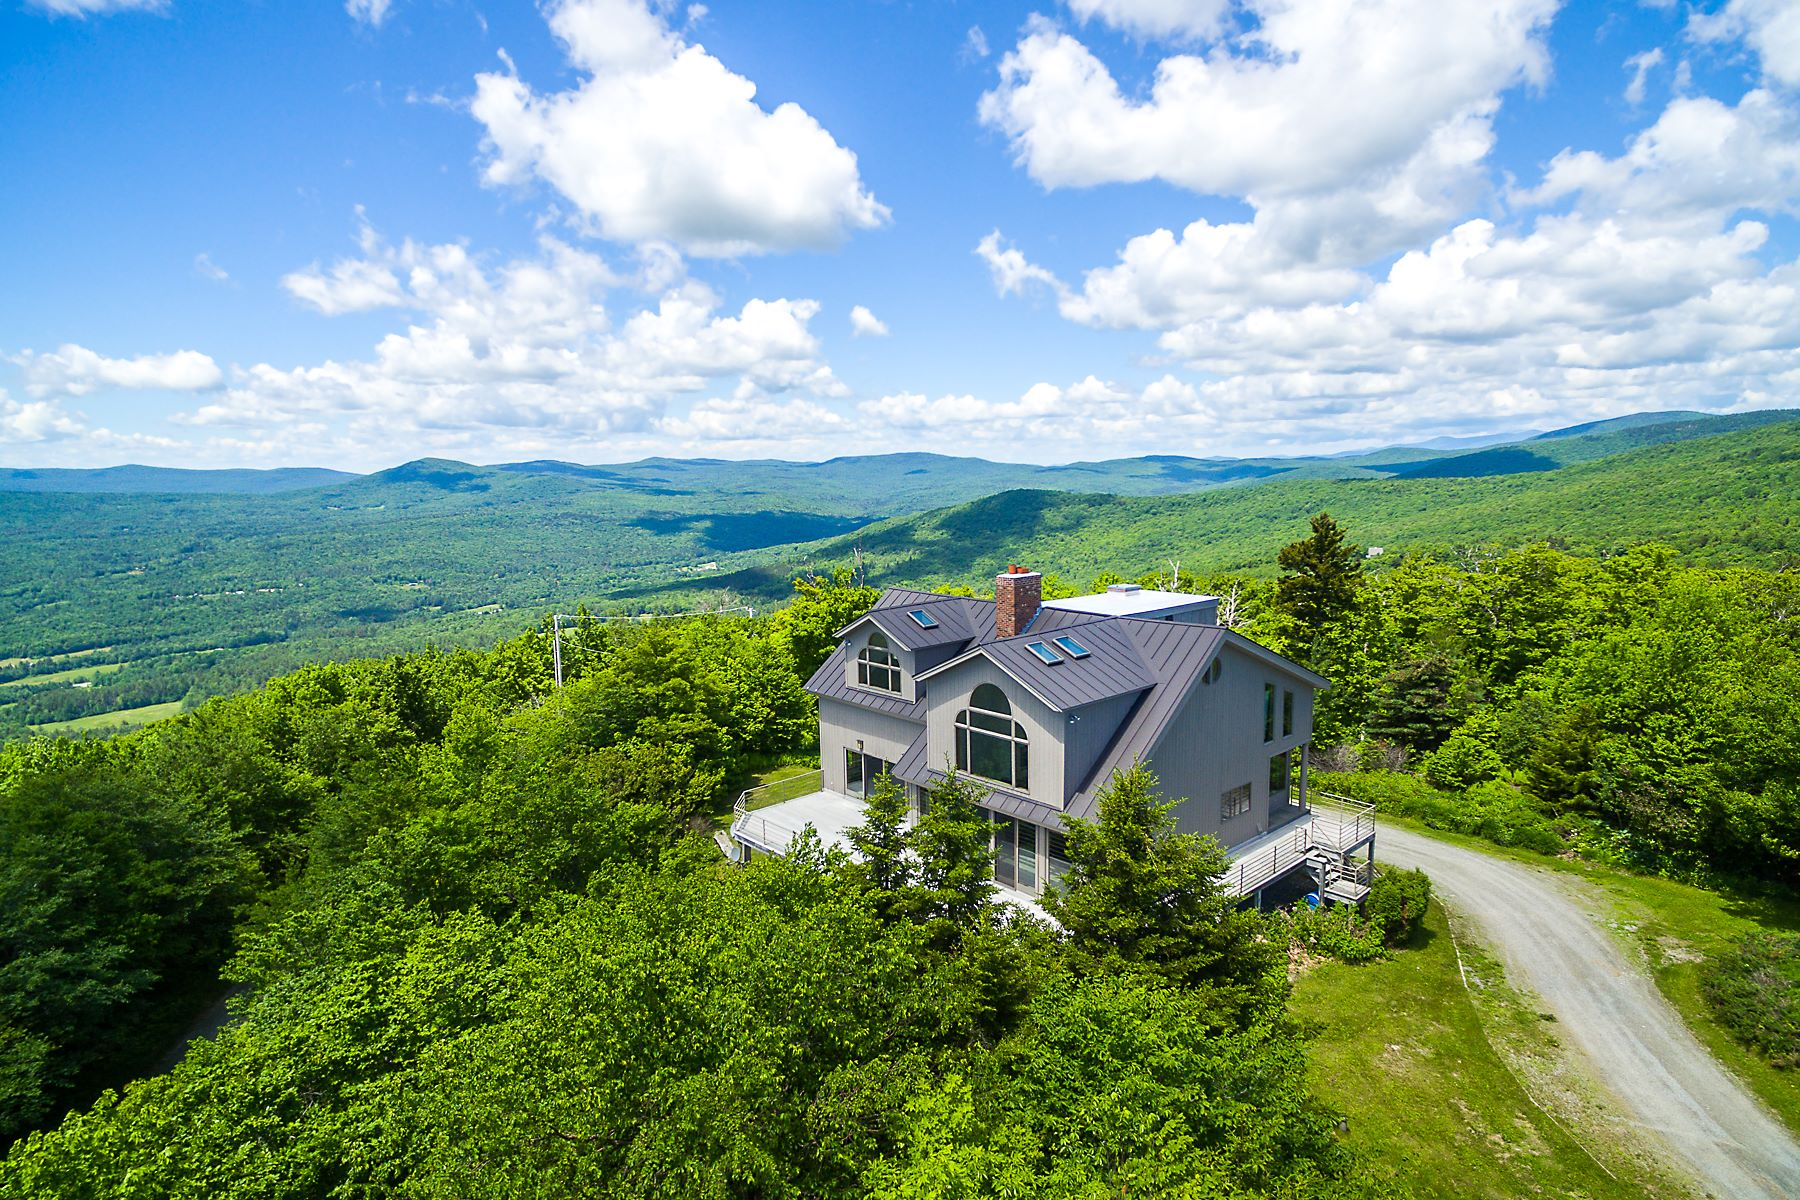 Single Family Homes for Sale at Stunning Long Distance Views 1989 Andover Ridge Rd Andover, Vermont 05143 United States